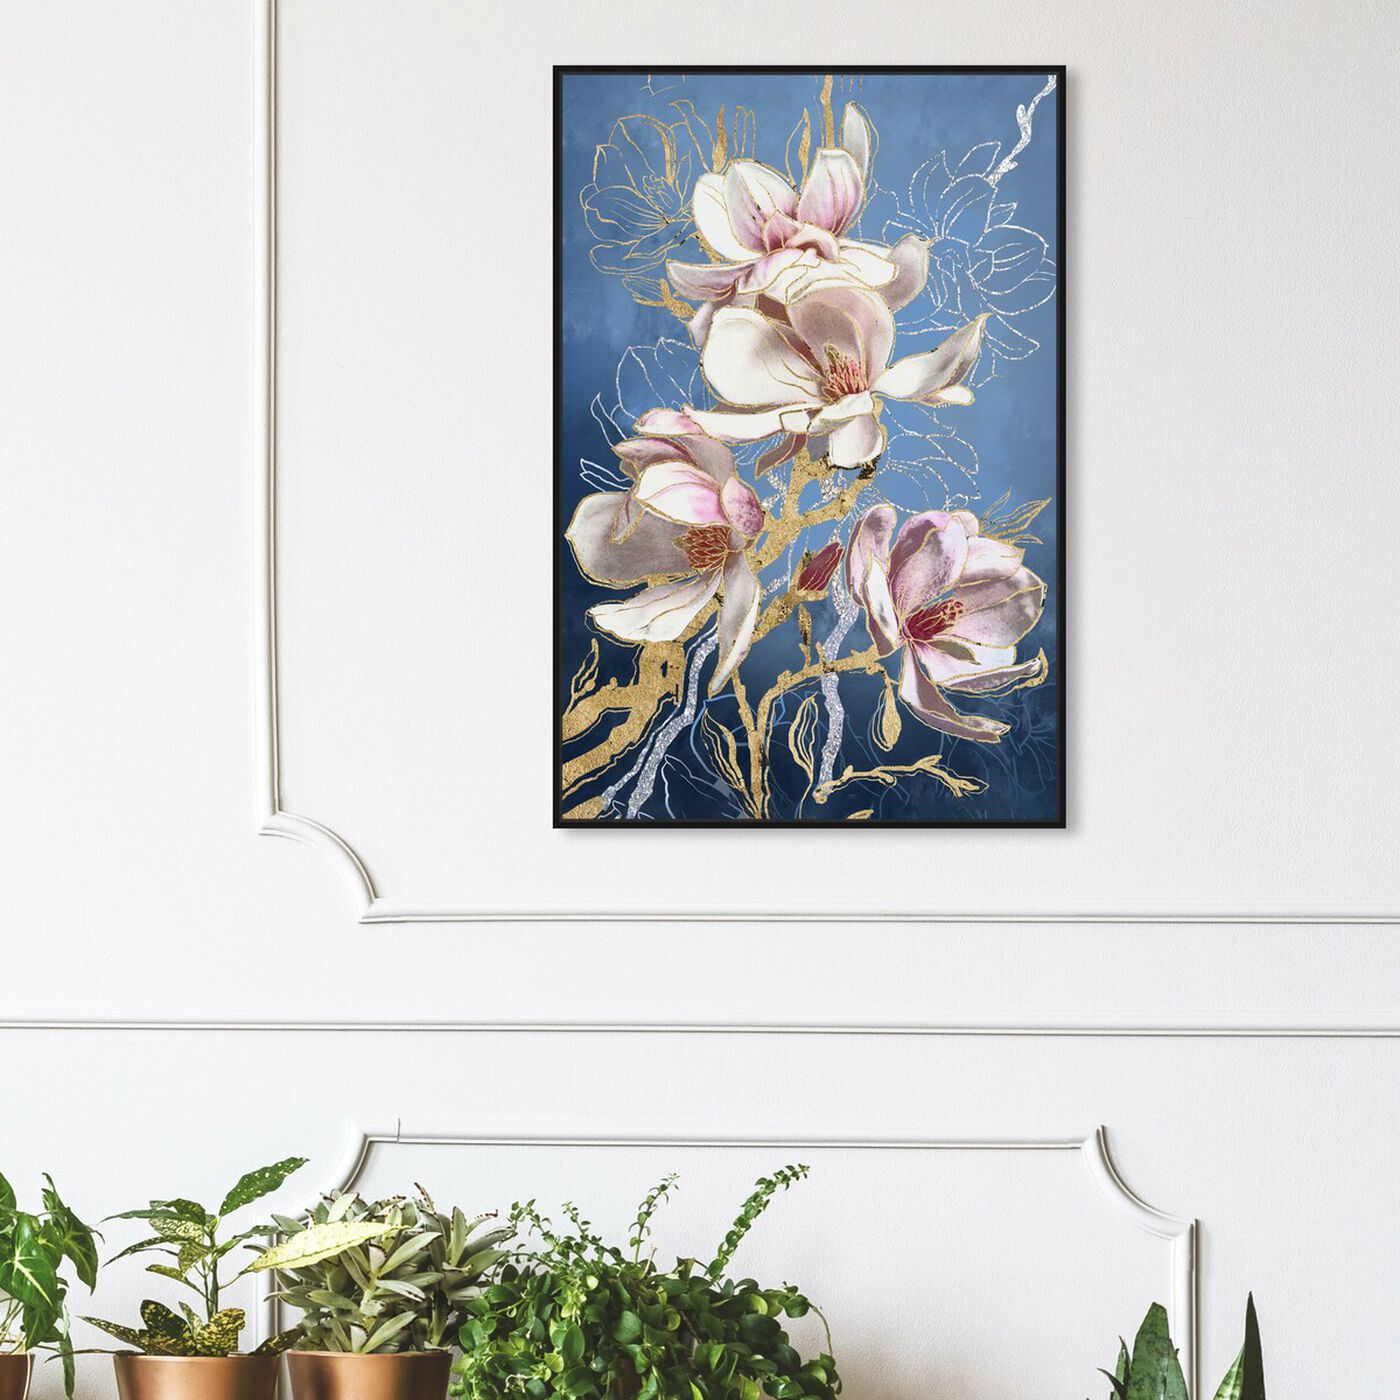 Hanging view of Modern Van Gogh featuring floral and botanical and florals art.